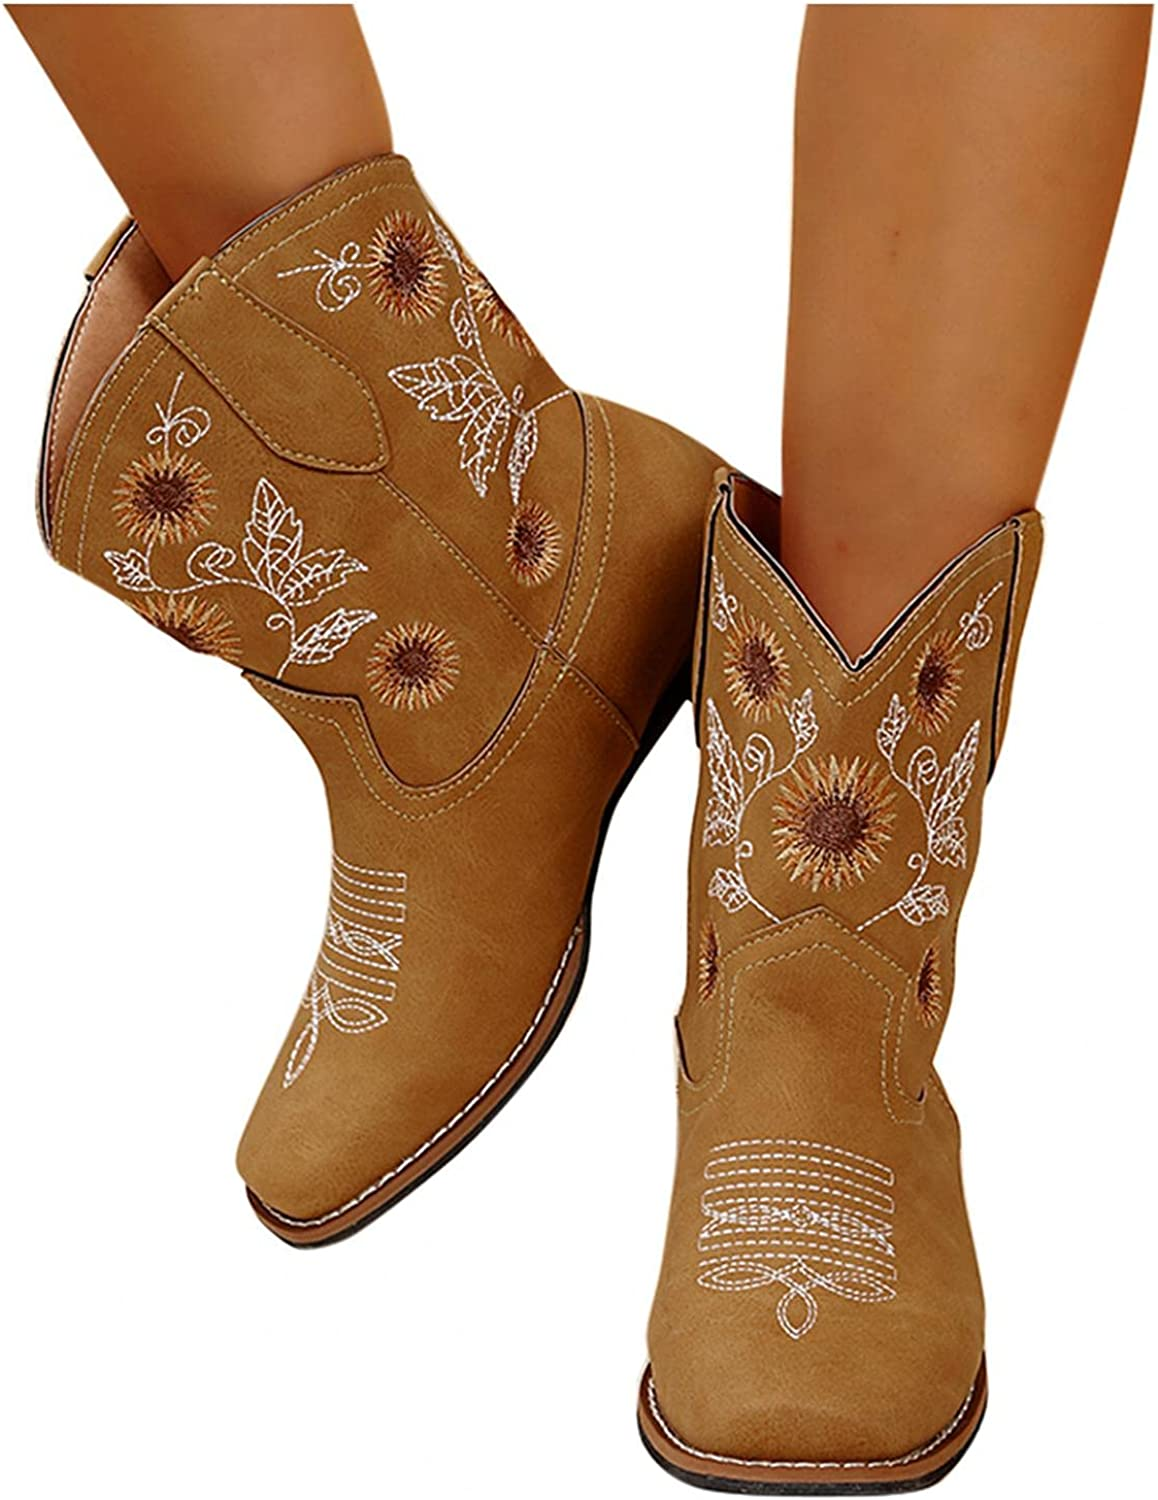 Cowboy Boots for Women with Heel Vintage Combat Wedge Platform Boots Dressy Pointed Toe Slip On Ankle Booties